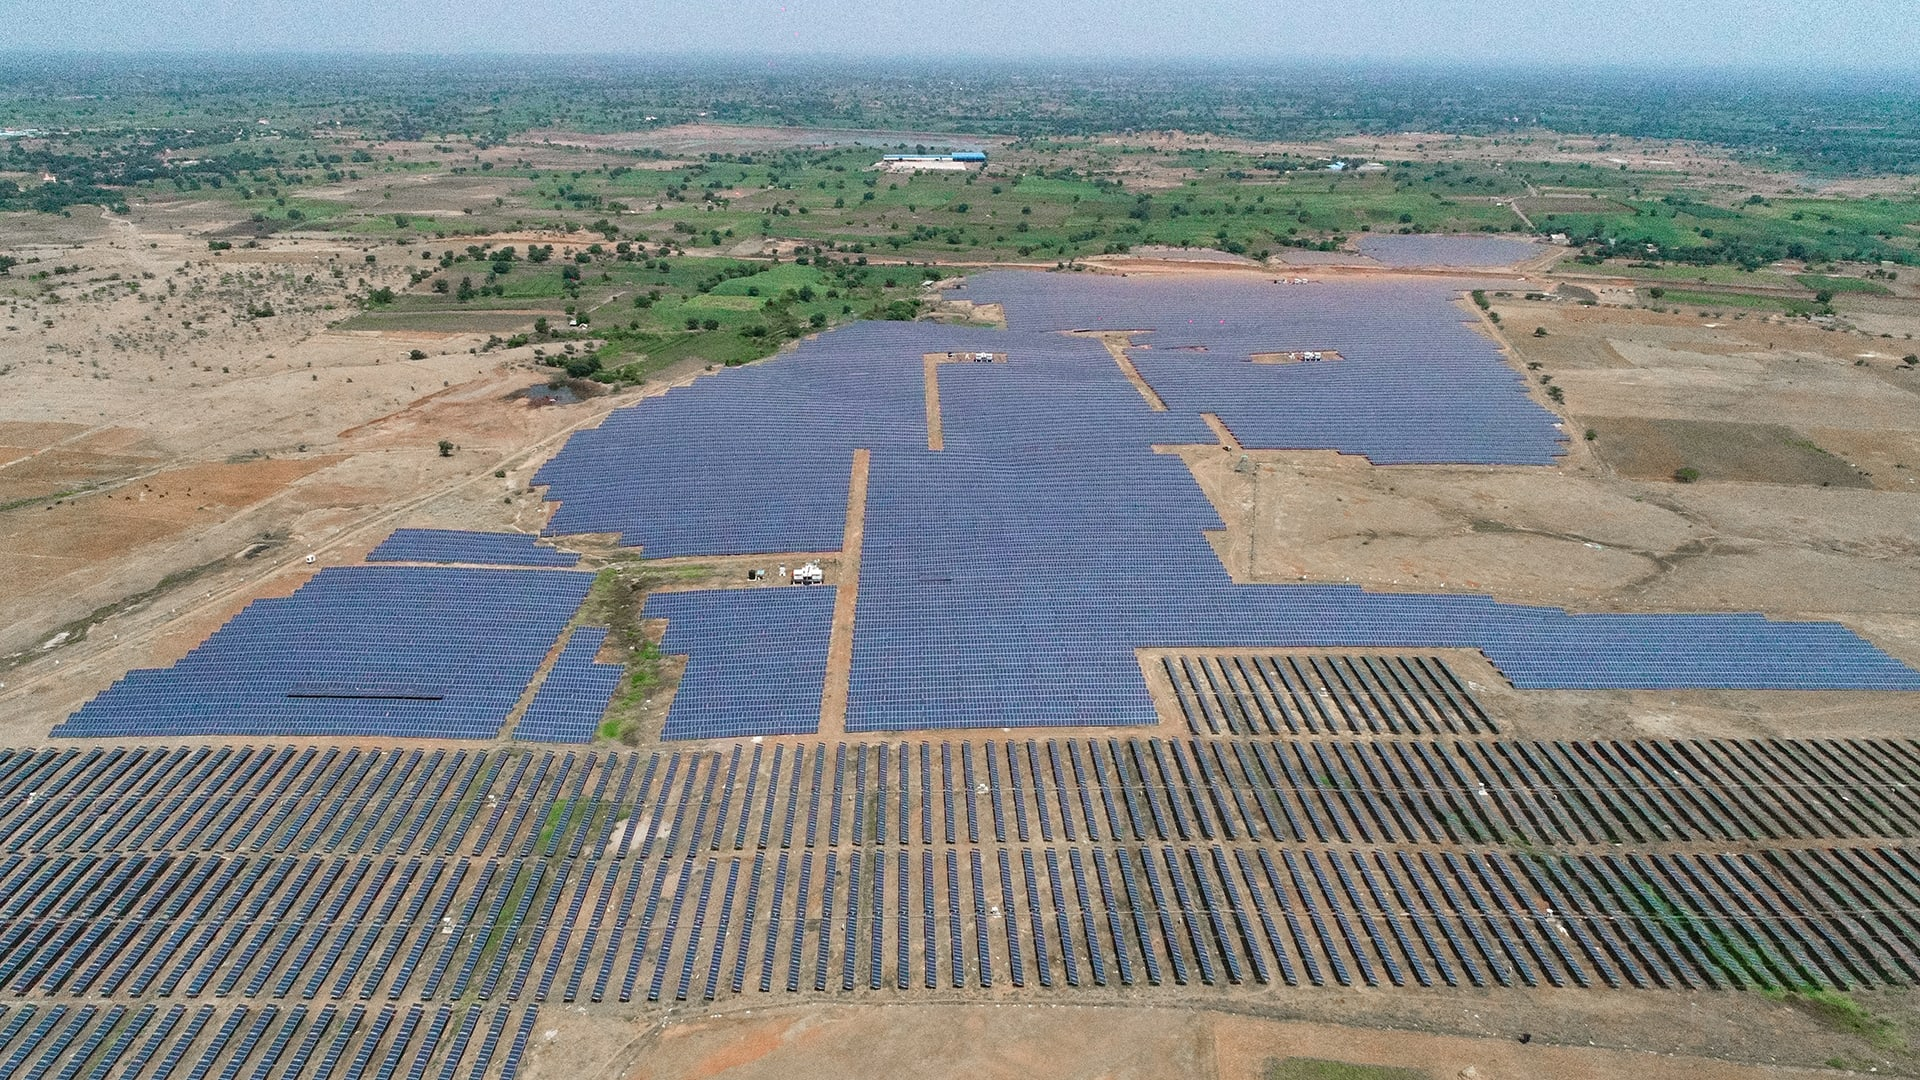 """In some areas of Maharashtra, solar power plants have been set up on grasslands often considered """"wasteland'"""